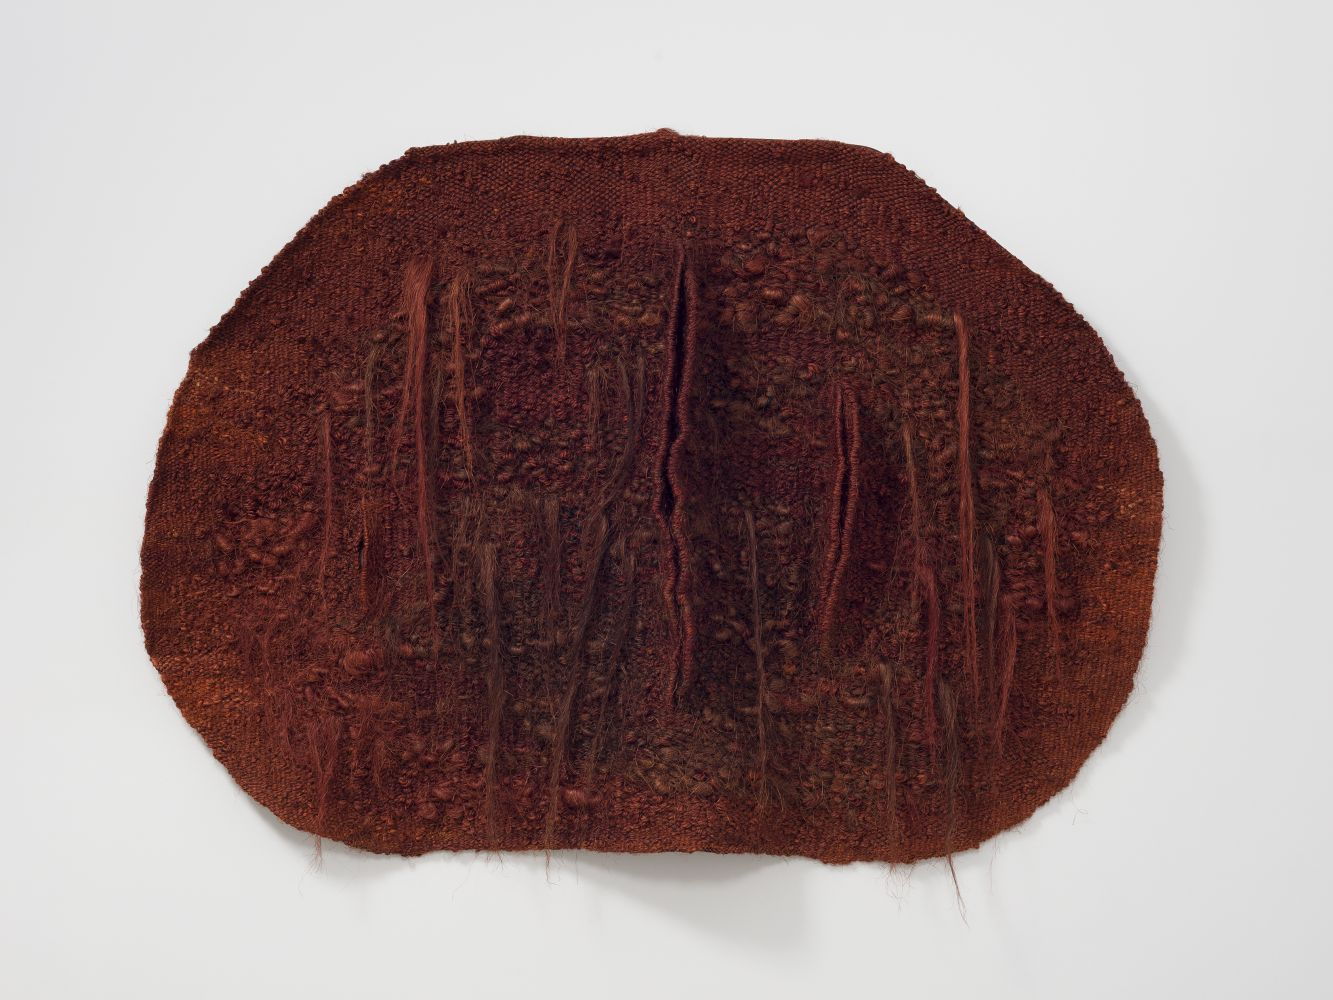 Horizontally oriented, oval shaped, red textile with slits by Magdalena Abakanowicz